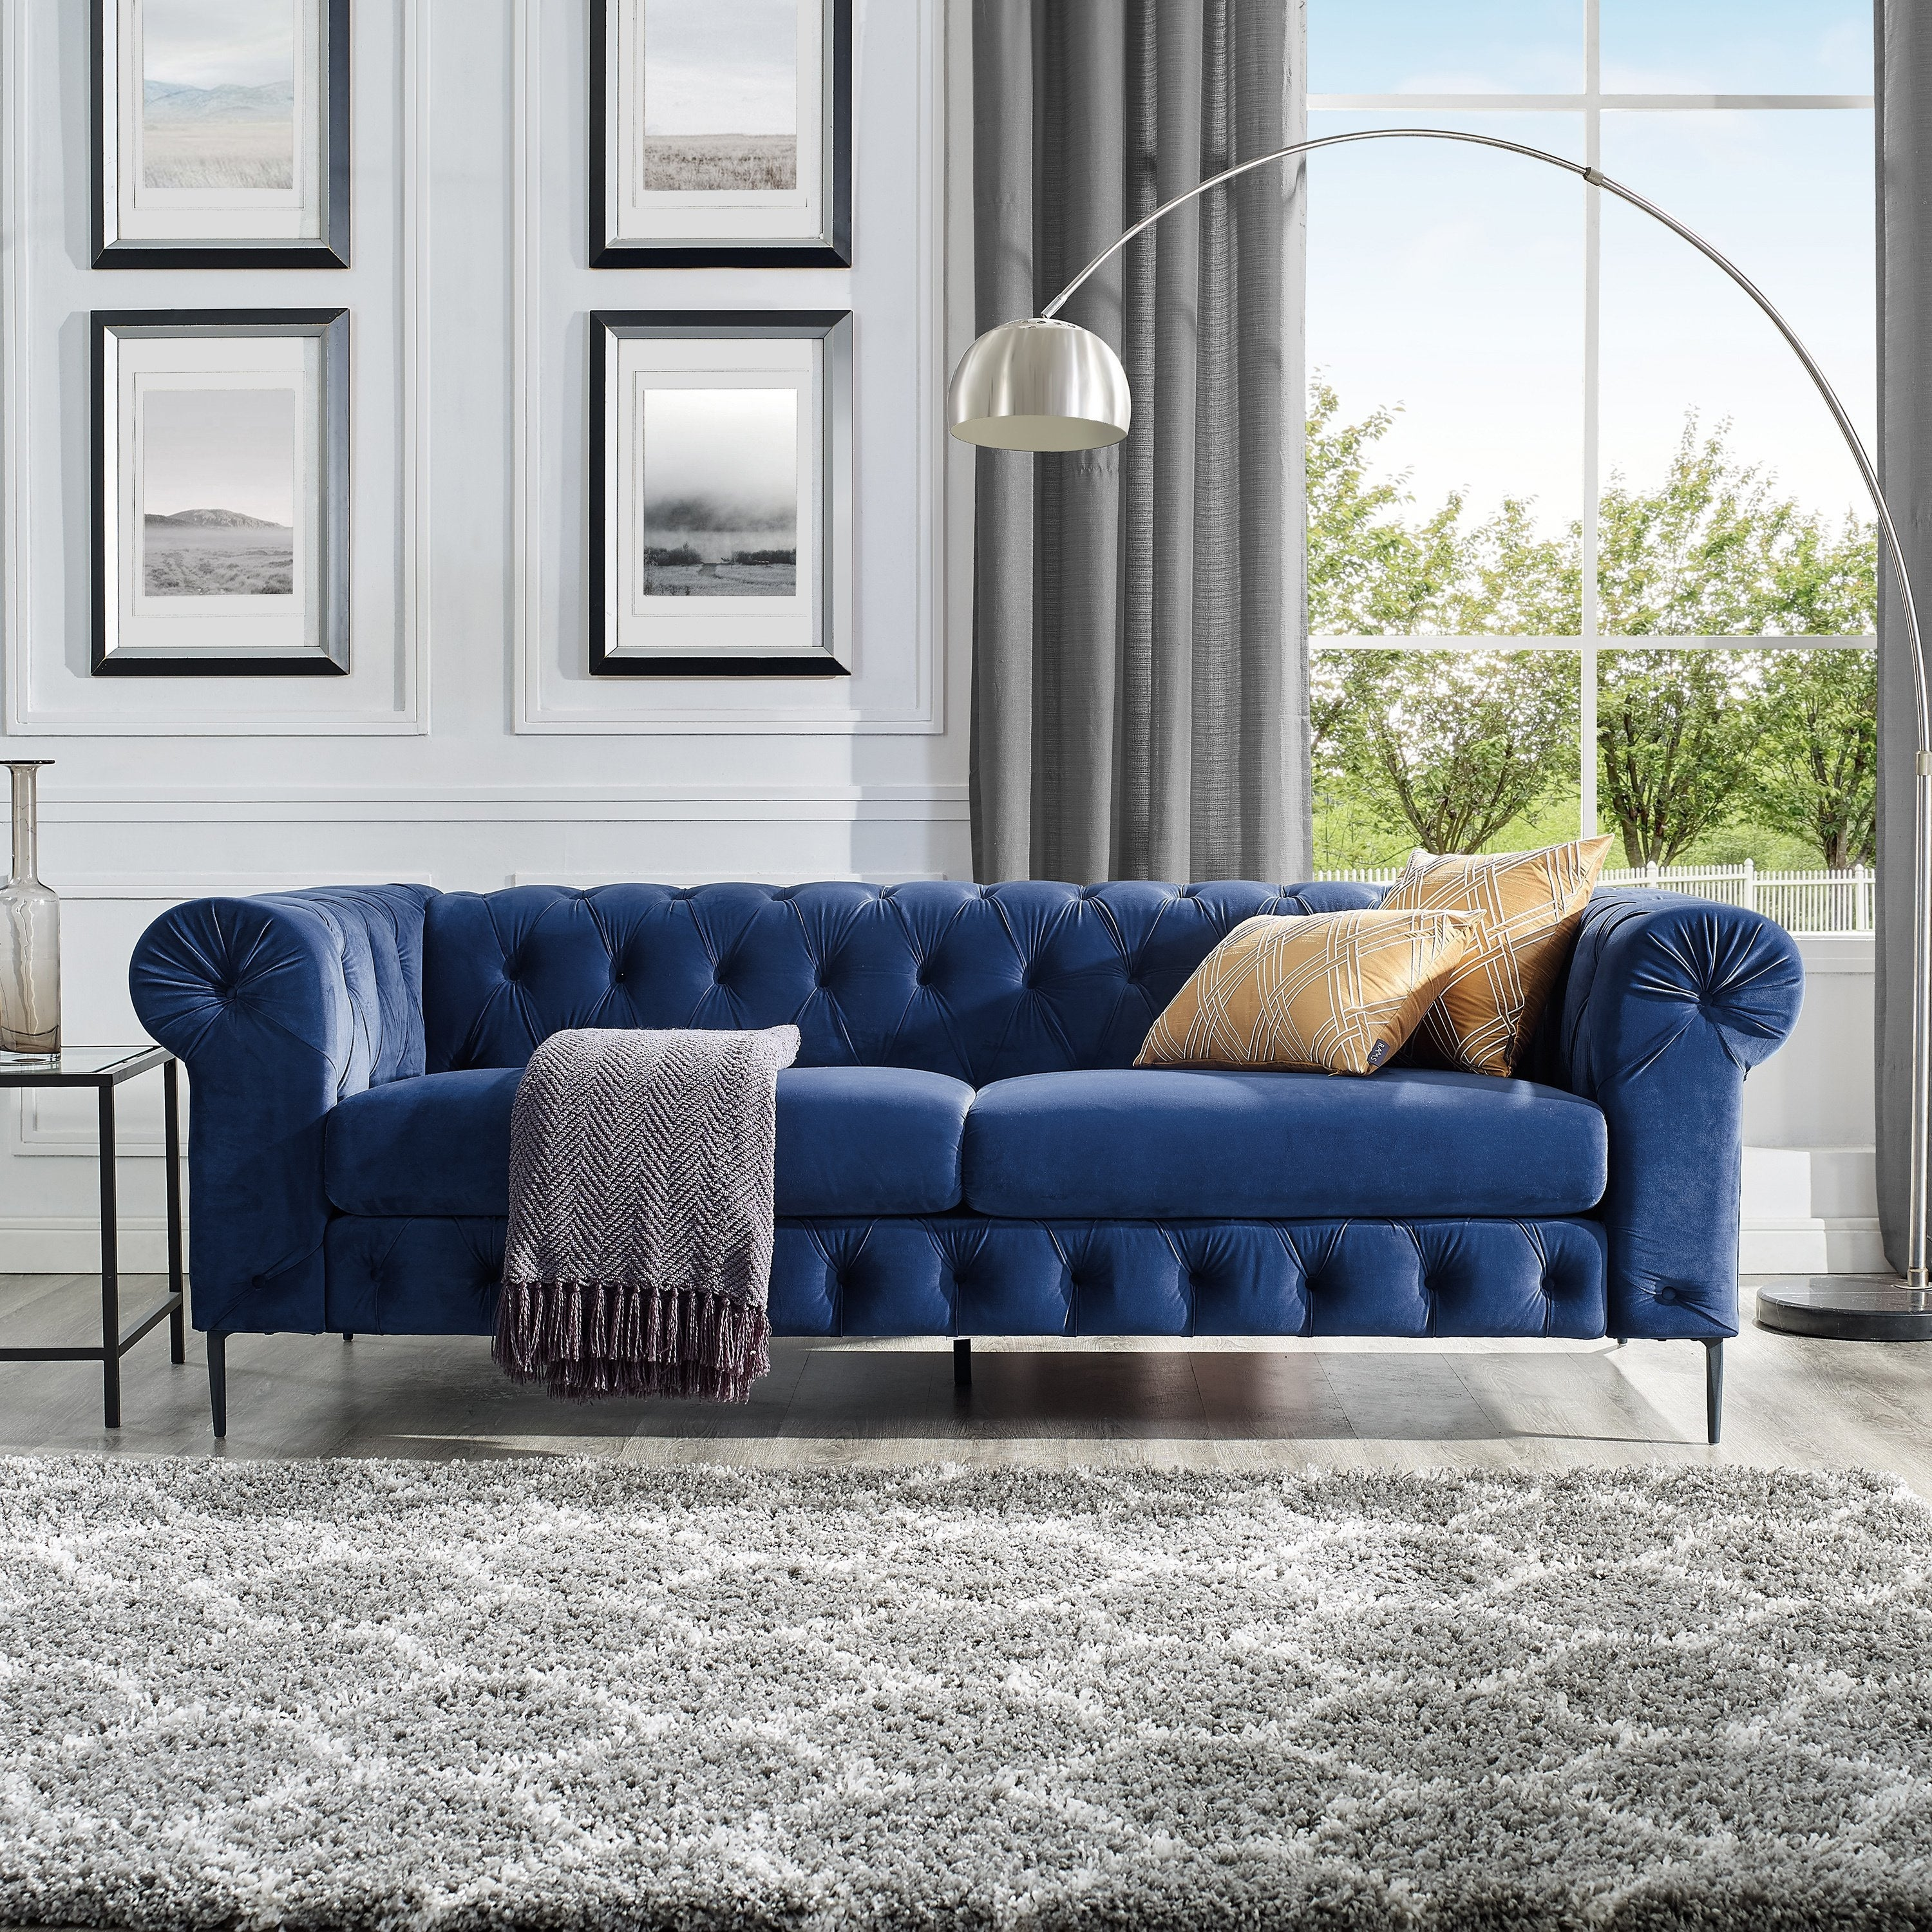 Corvus Prato Velvet Chesterfield Sofa With Rolled Arms Walmart Com Walmart Com